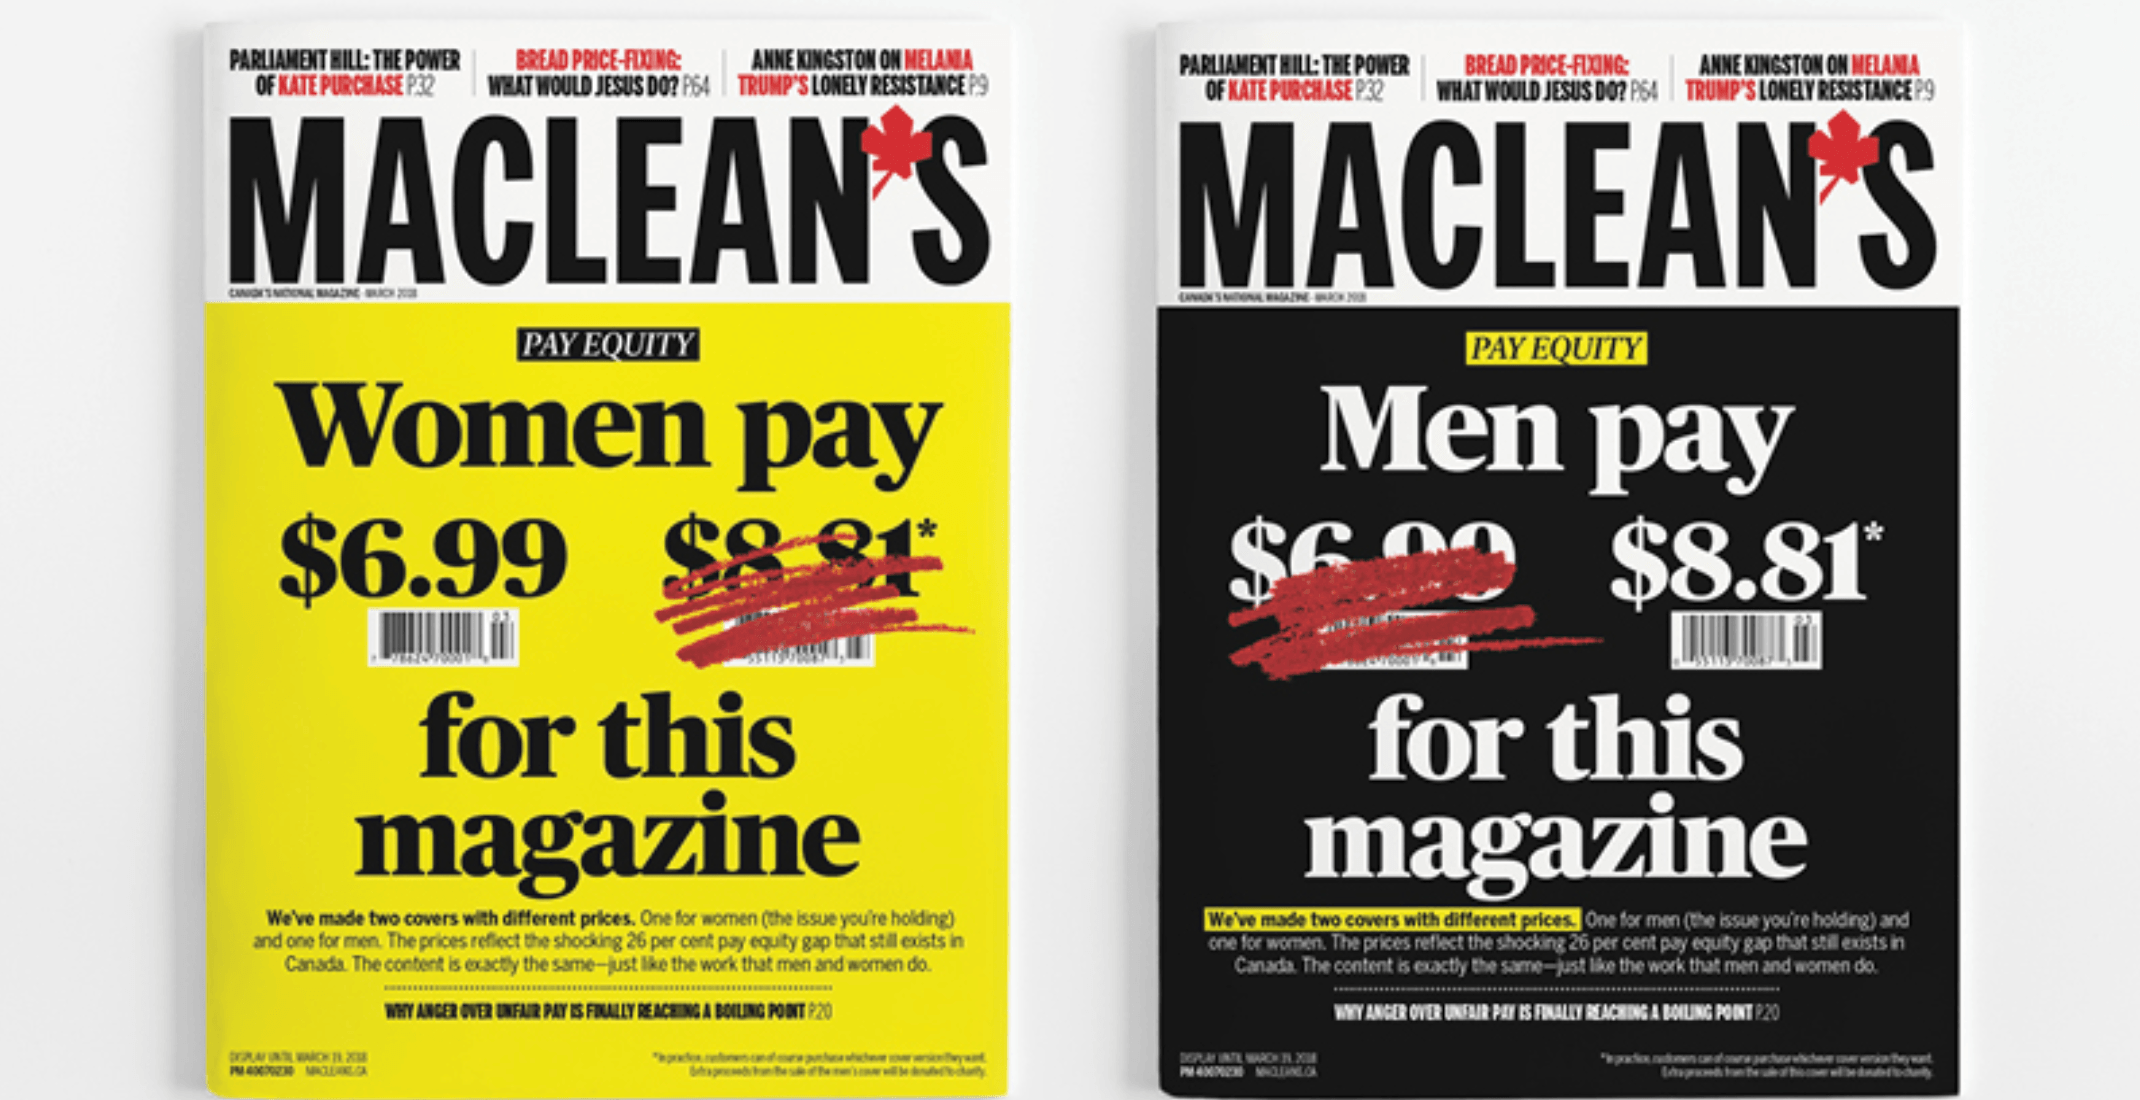 Maclean's asks men to pay 26% more for same issue to address gender pay gap